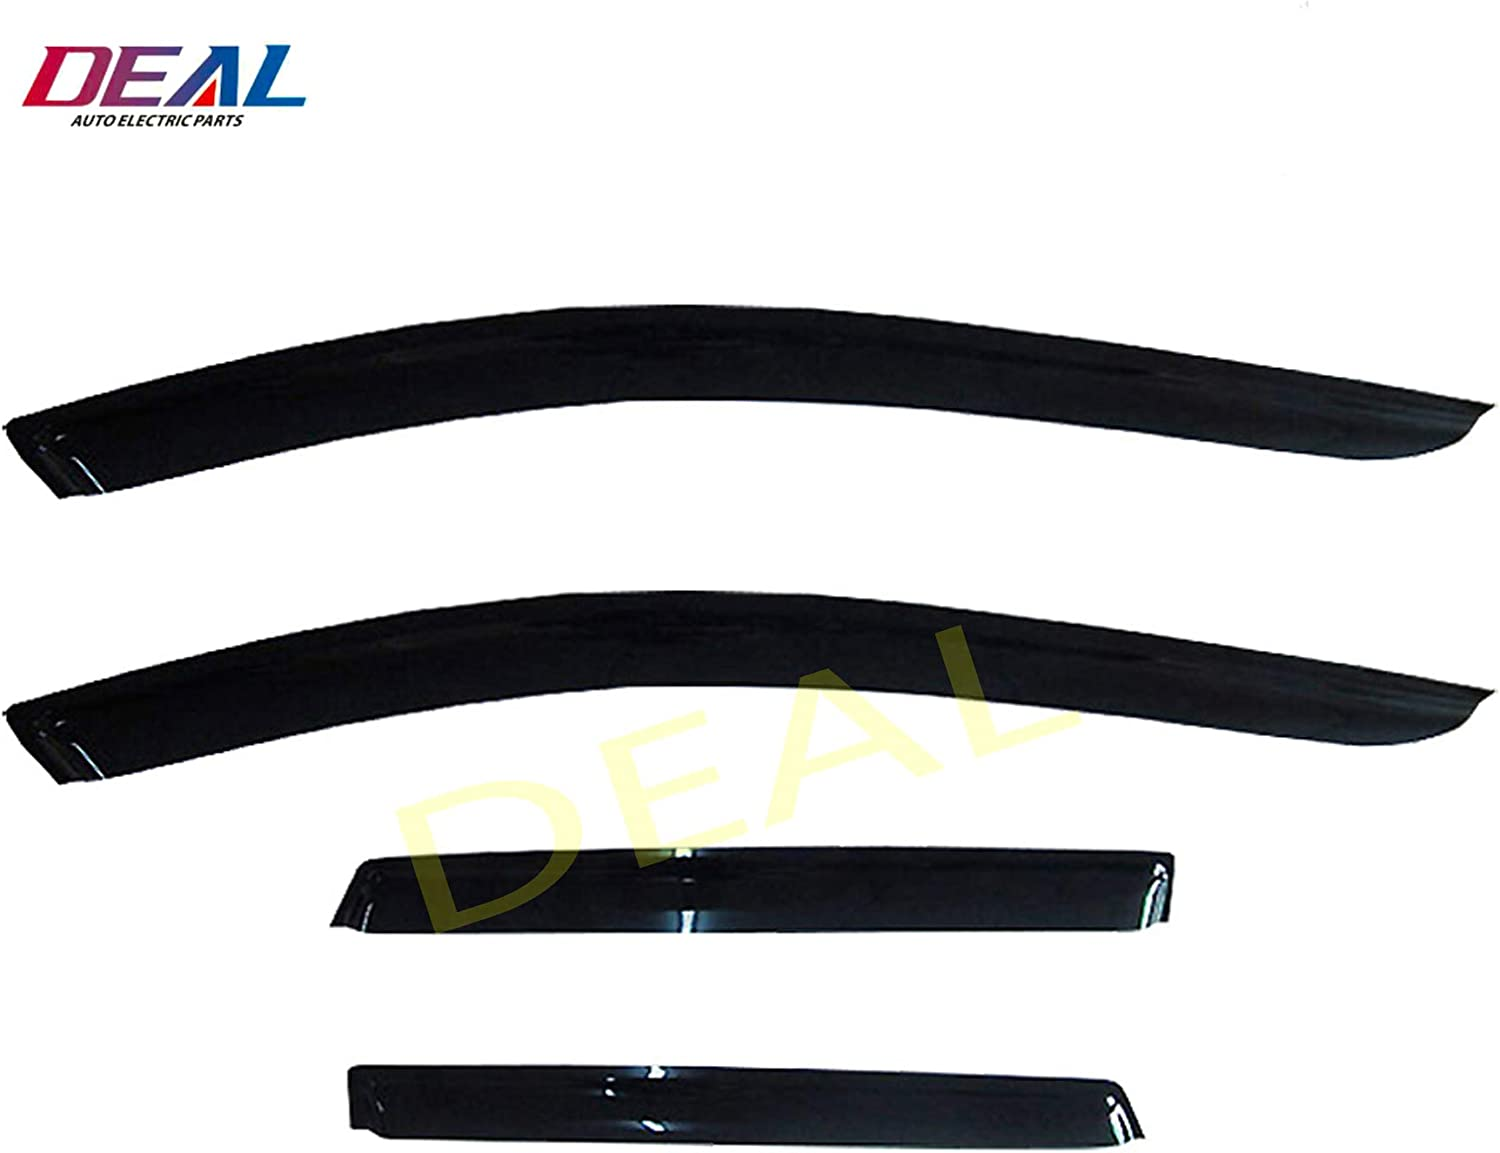 DEAL 4-Piece Set Vent Smoke Window Visor Side Window Sun Rain Guard With Outside Mount Tape-On Type 2007-2015 Lincoln MKX Custom Fit For 2007-2014 Ford Edge